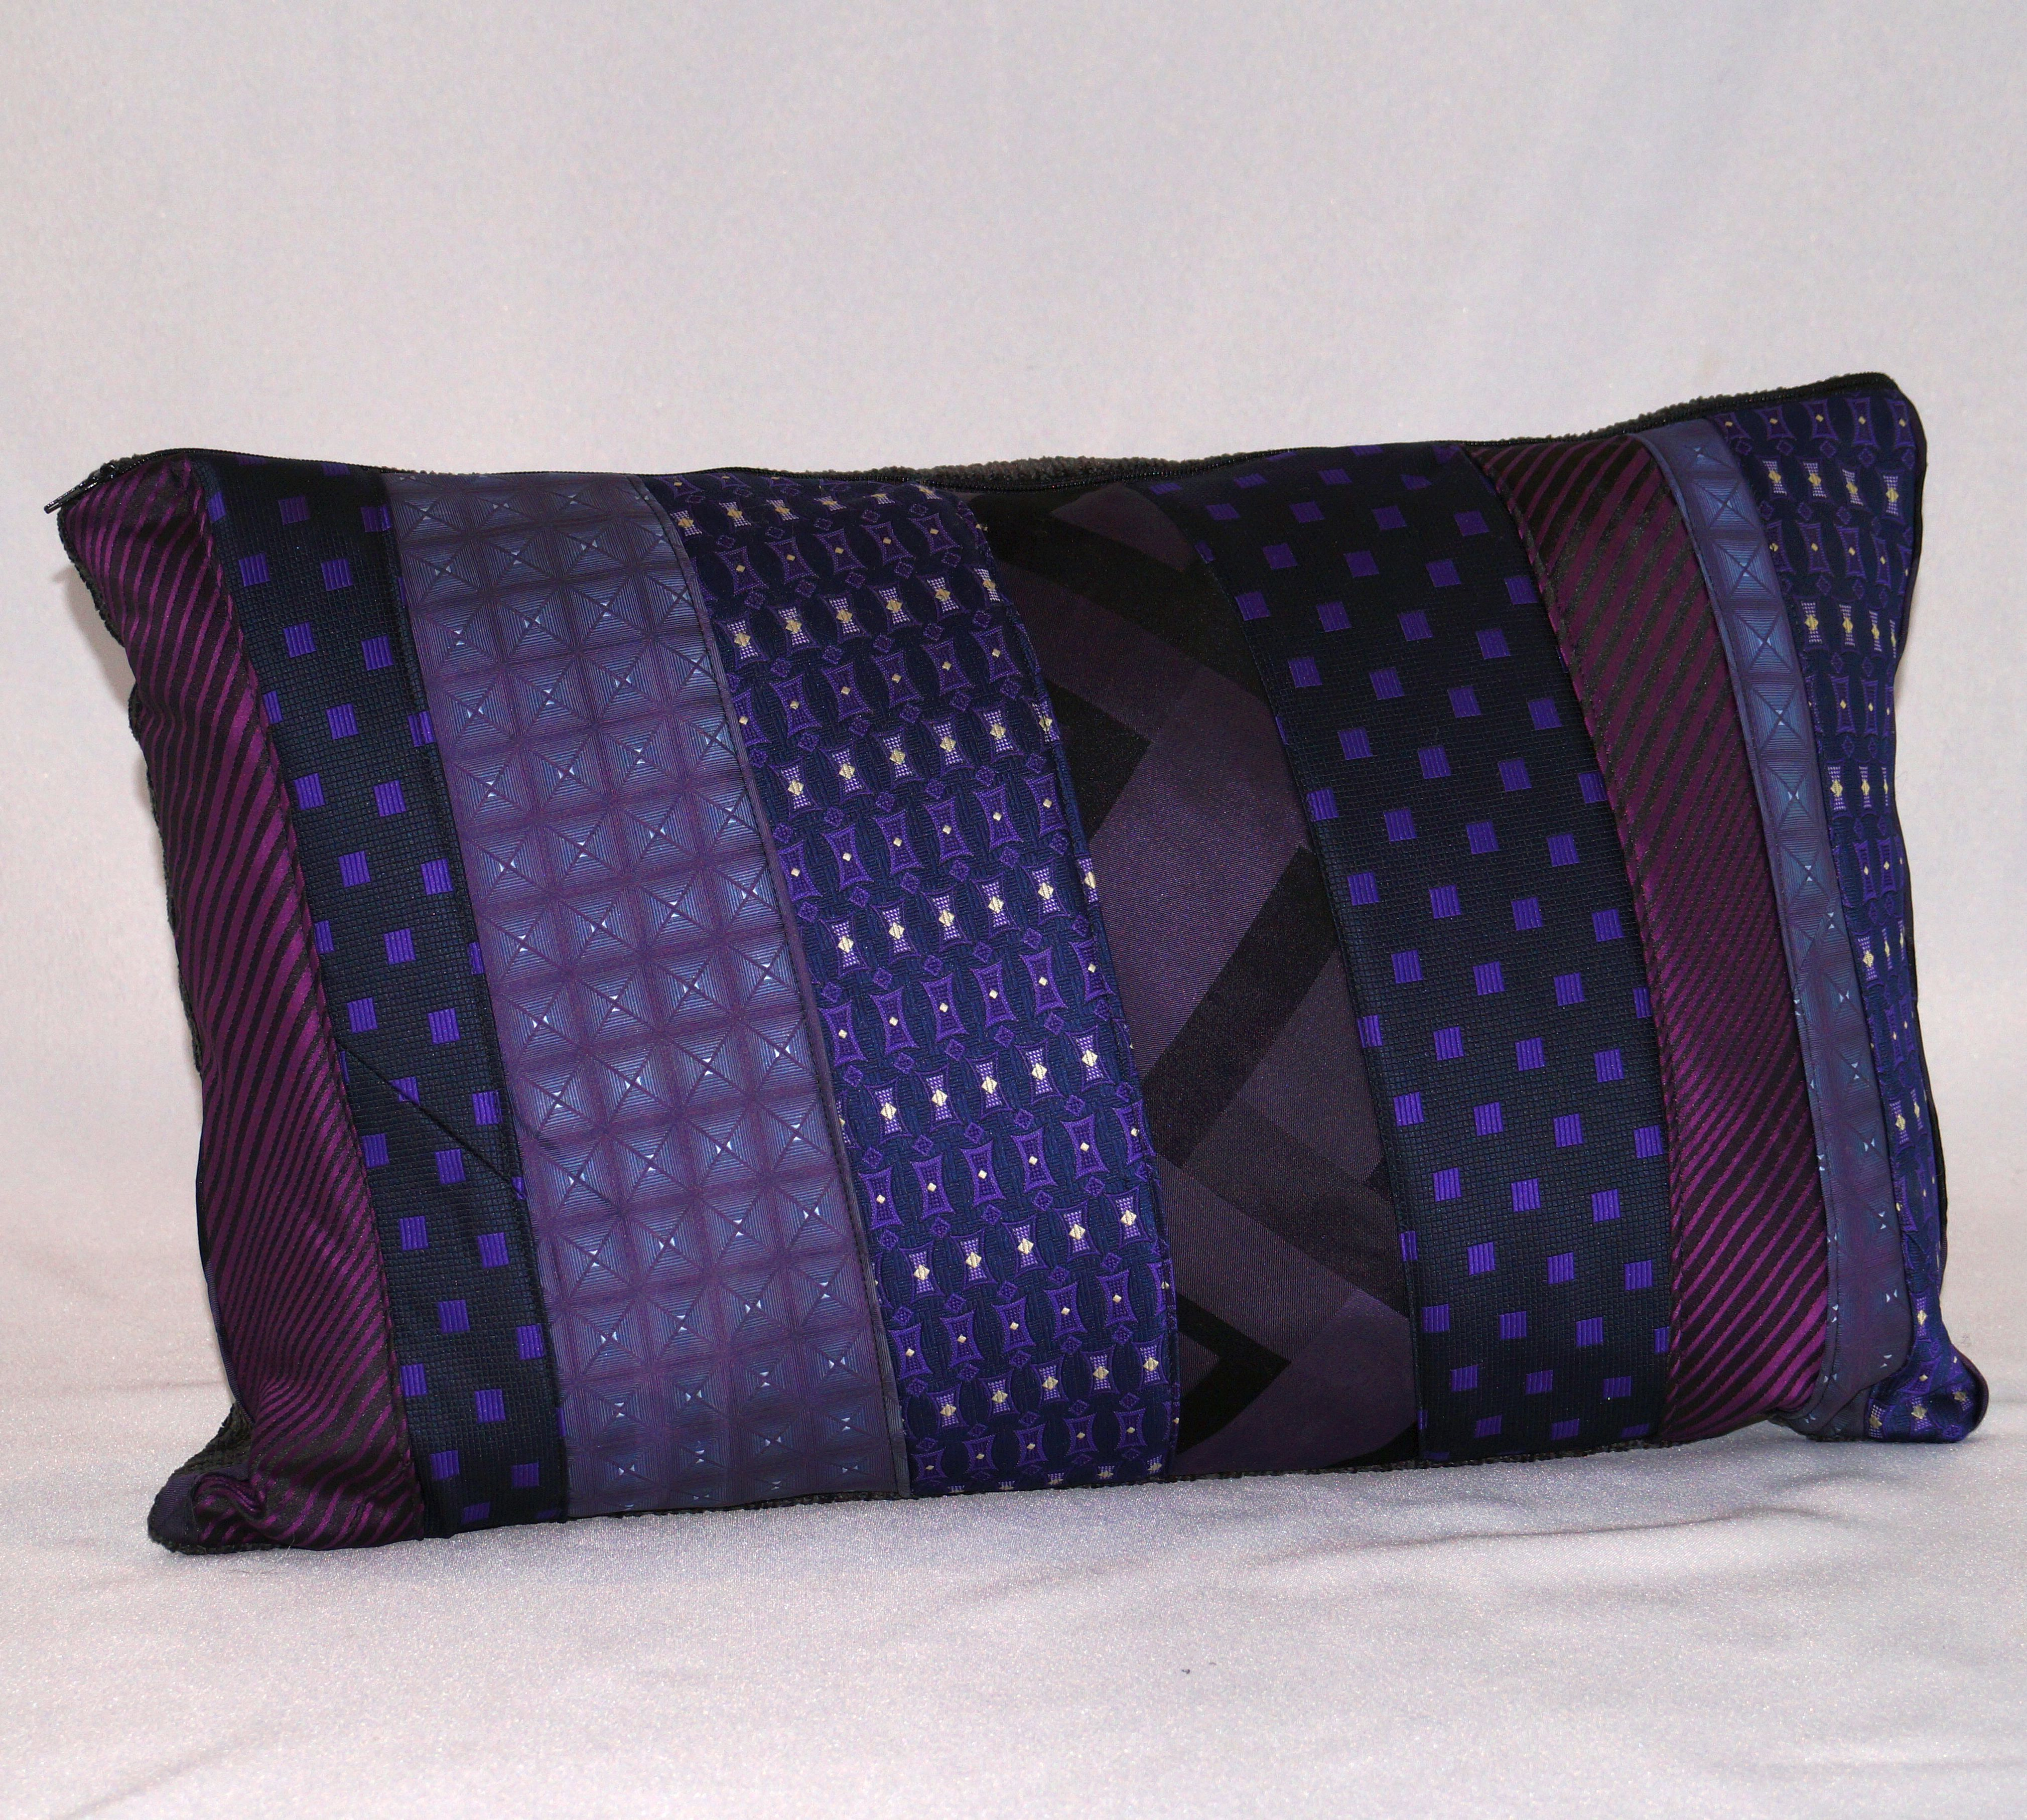 Upcycled-Tie-Cushion-Rectangle-Purple Rain_yoursandmineonline_LR.jpg